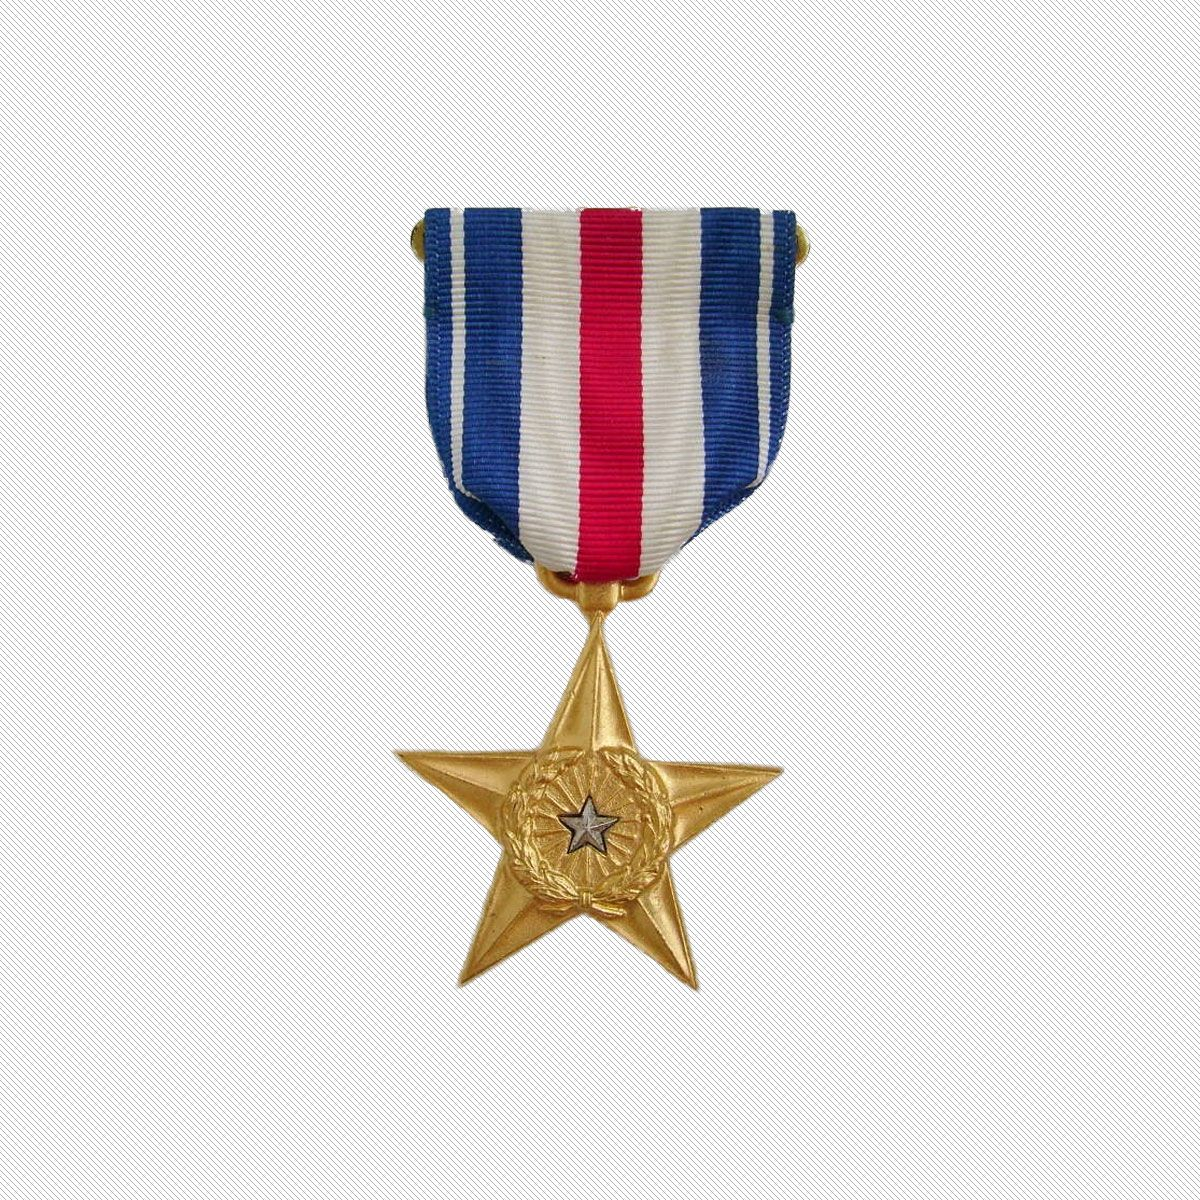 Ww2 Era Silver Star Military Medal For Gallantry In Action